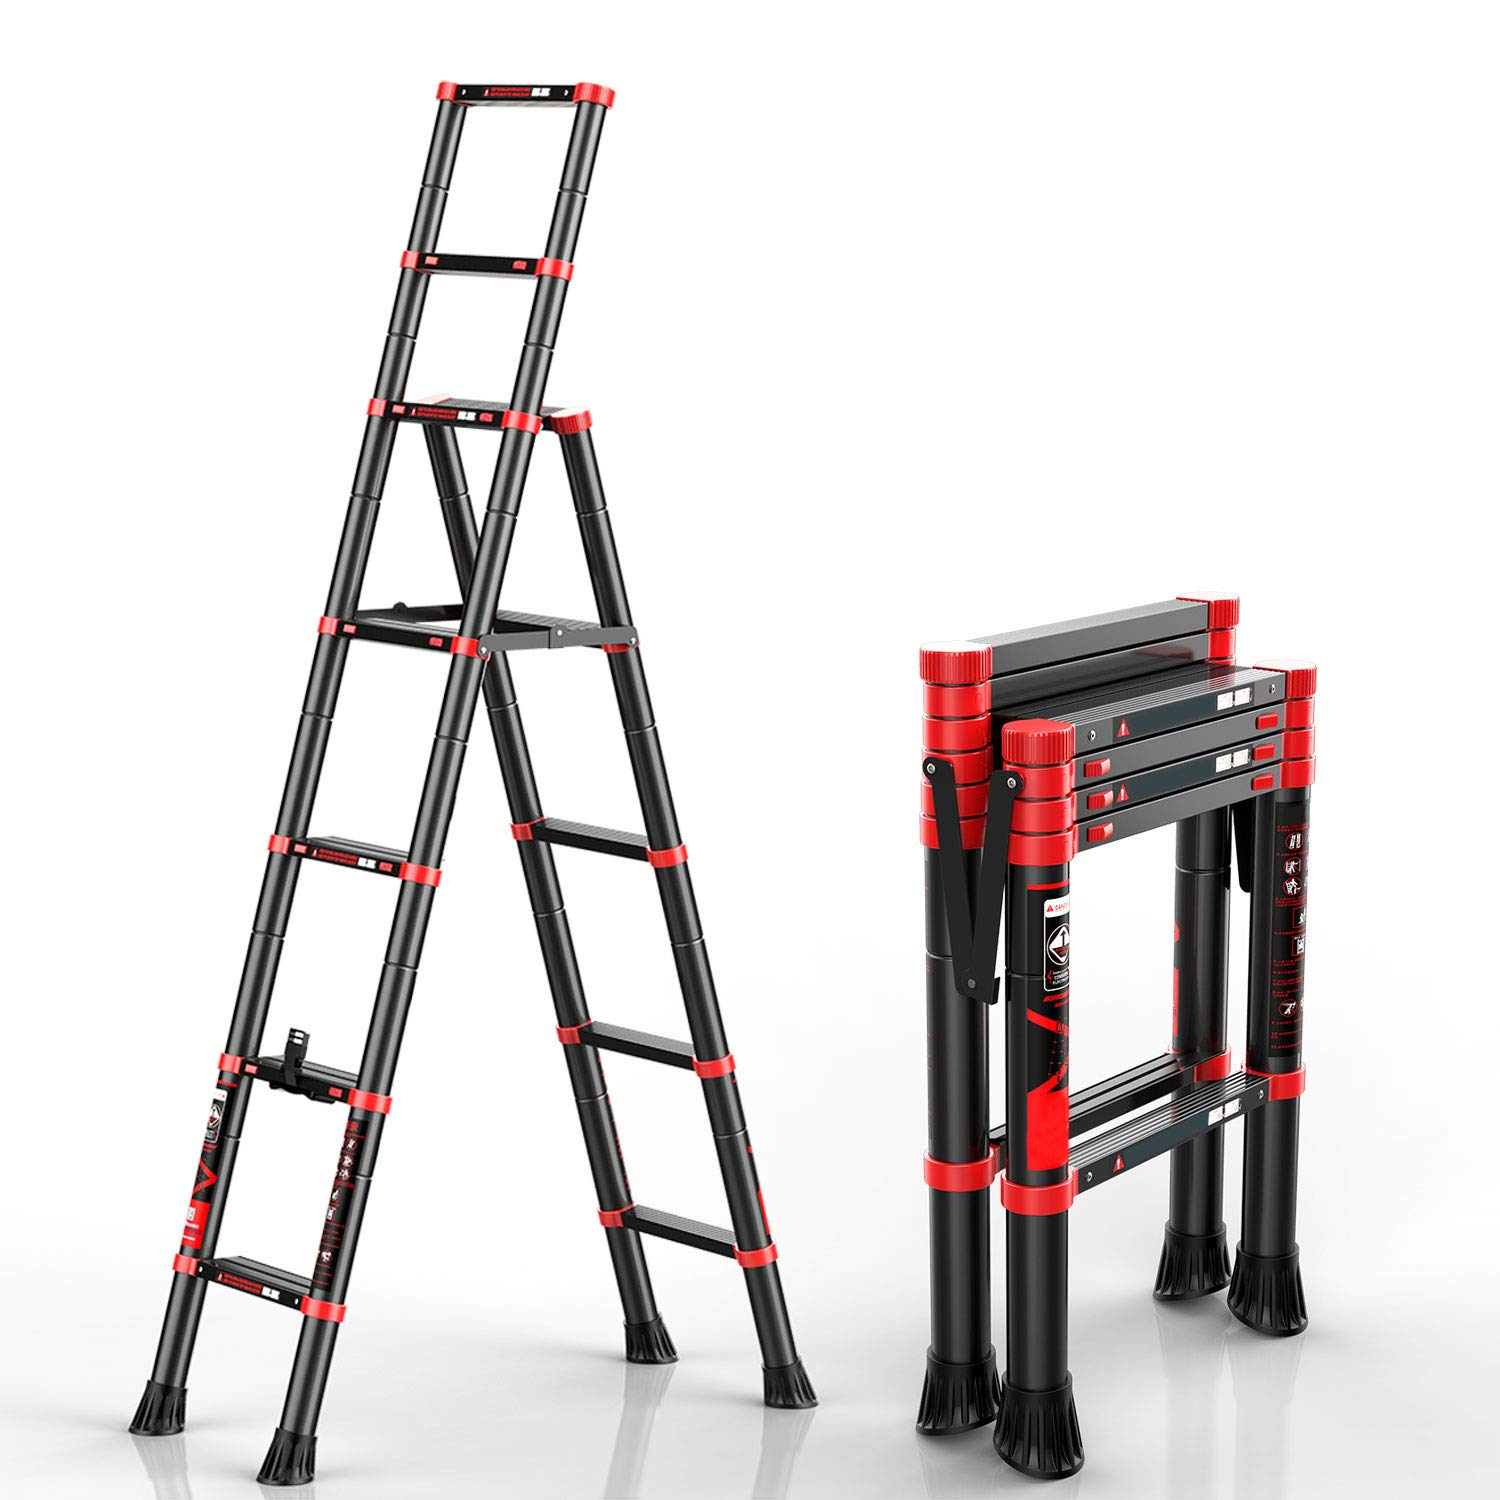 charaHOME Telescoping Ladder A-Frame Aluminum Extension Ladder Lightweight Portable Multi-Purpose Folding Ladder, 330 Pound Load Capacity